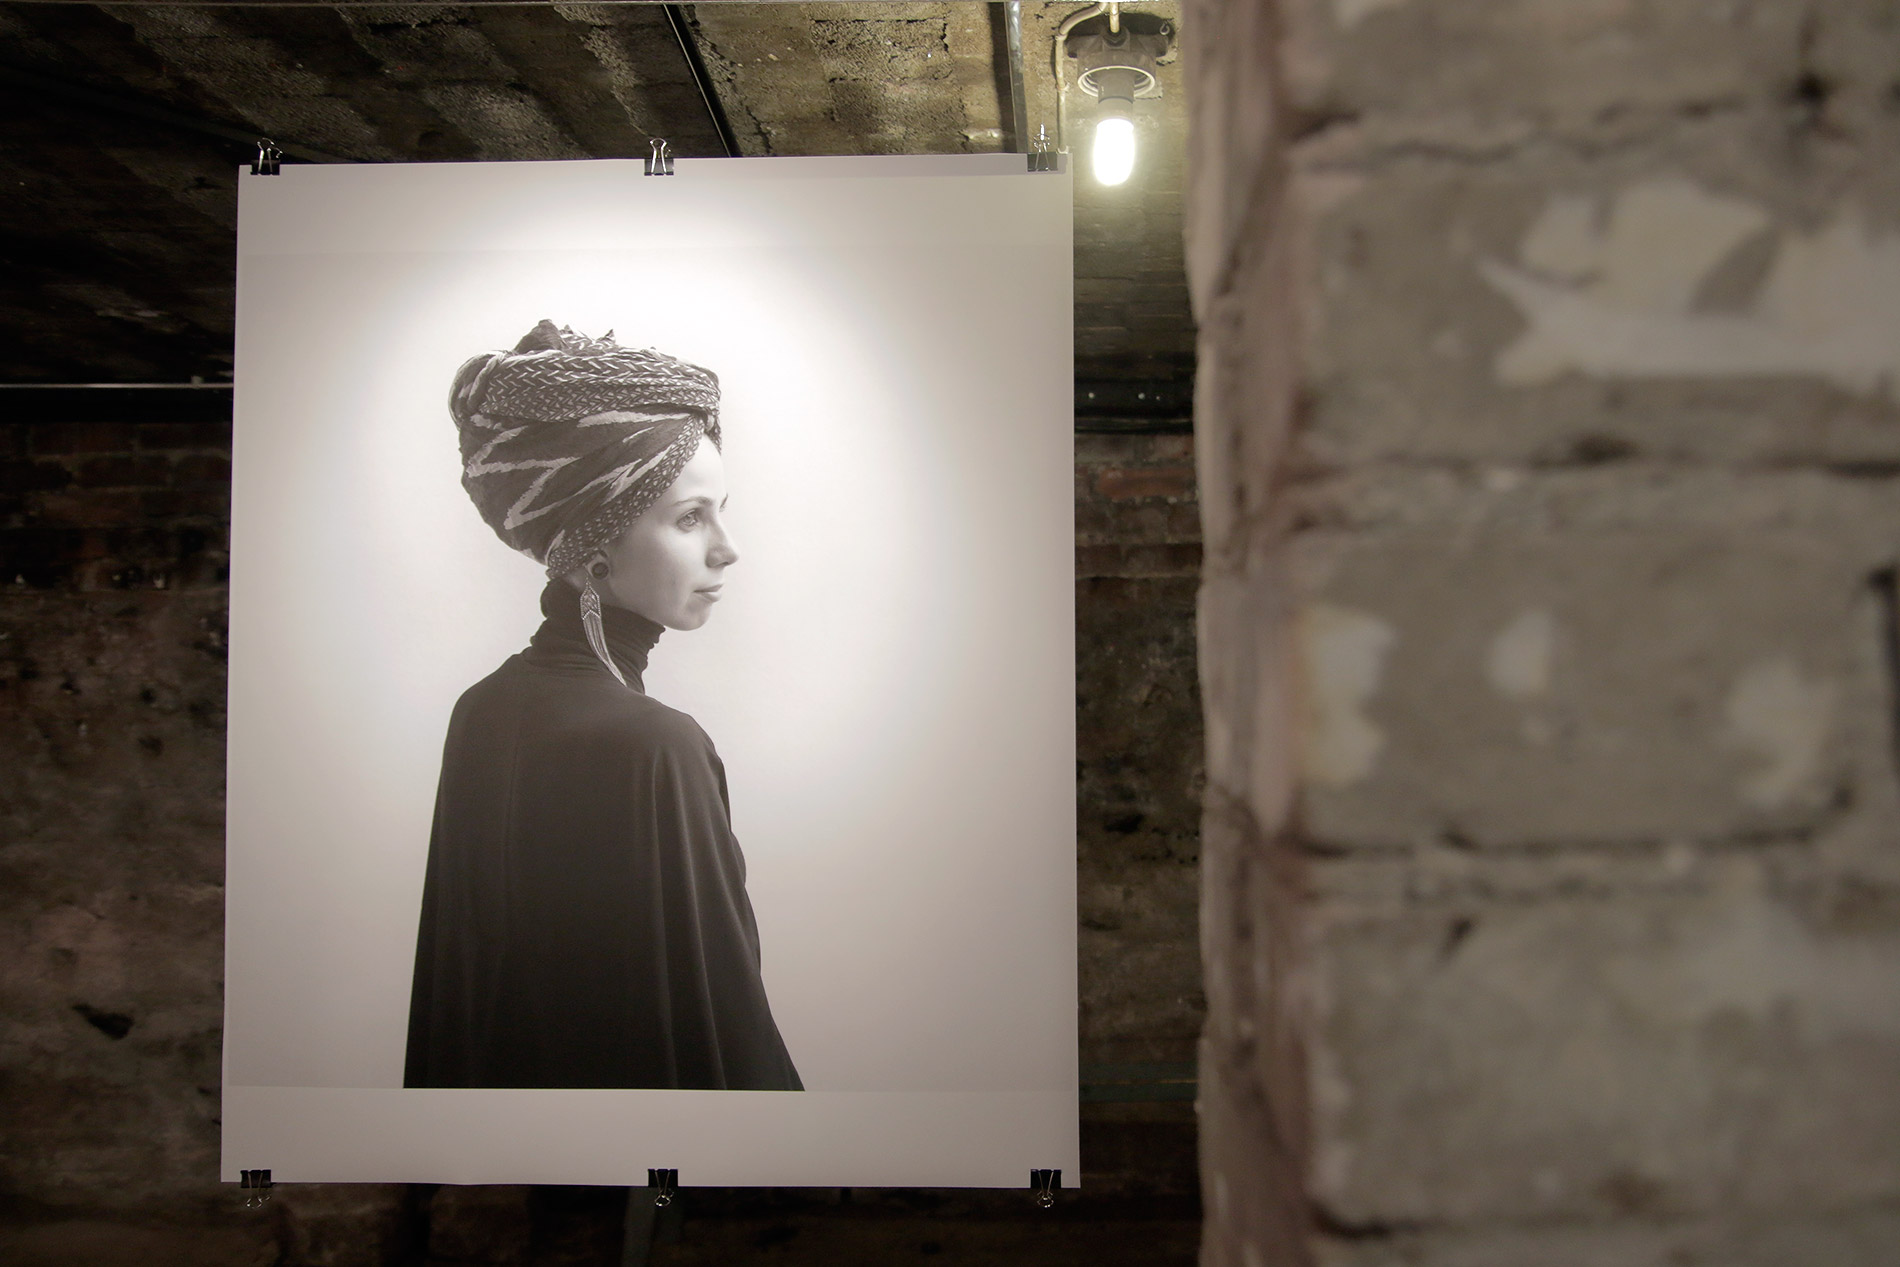 The Exhibition 'Finns' Portrays The Beauty of Dual Citizenship